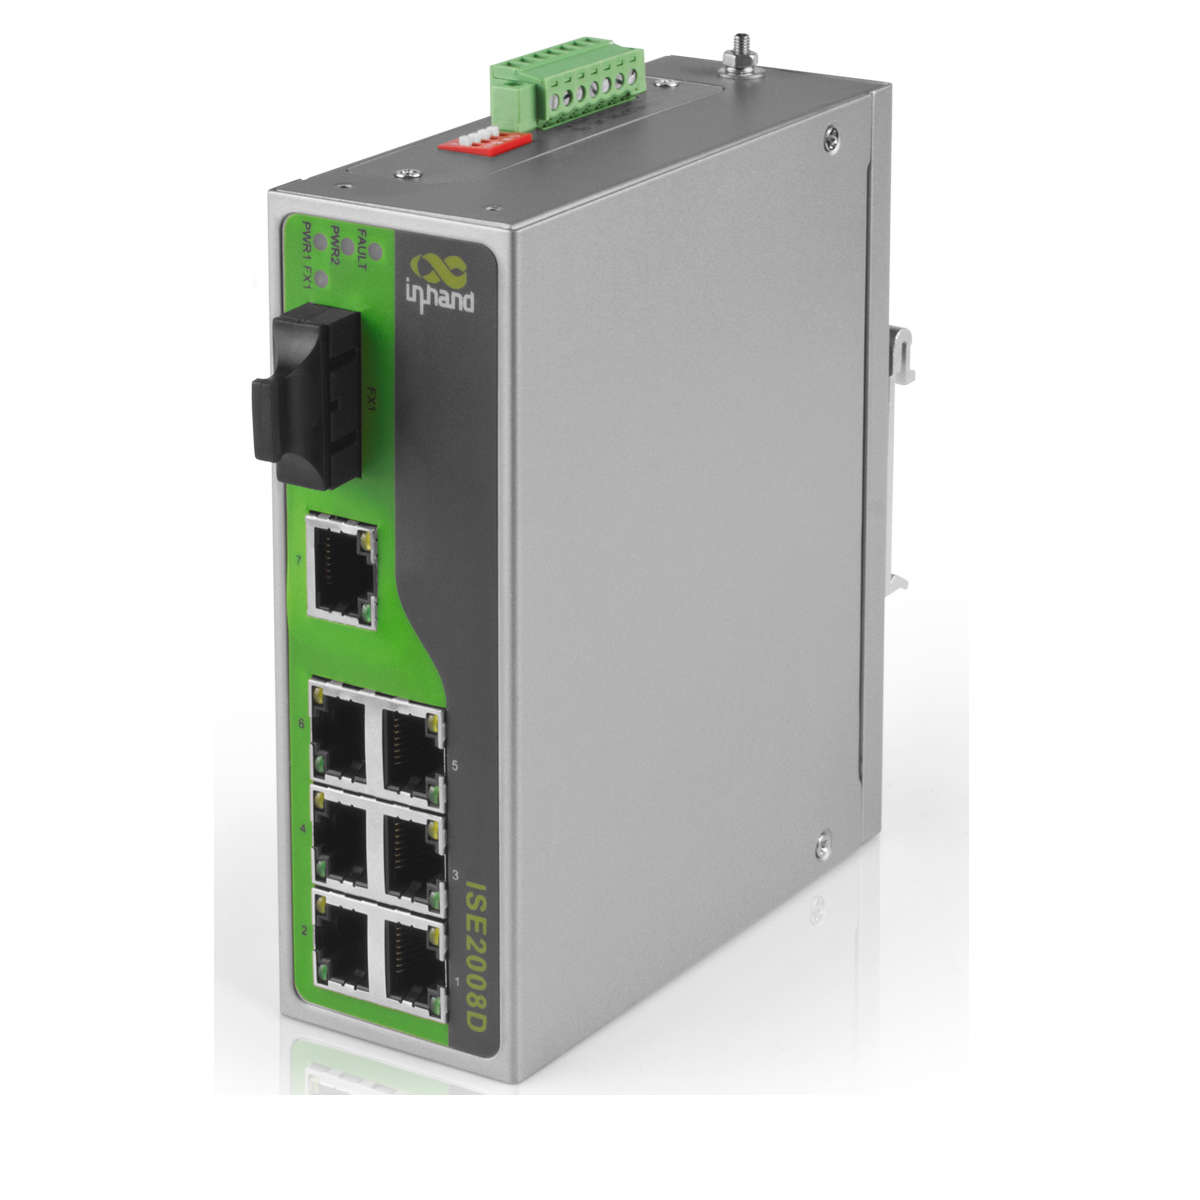 Entry-level Ethernet Switch ISE 2008D